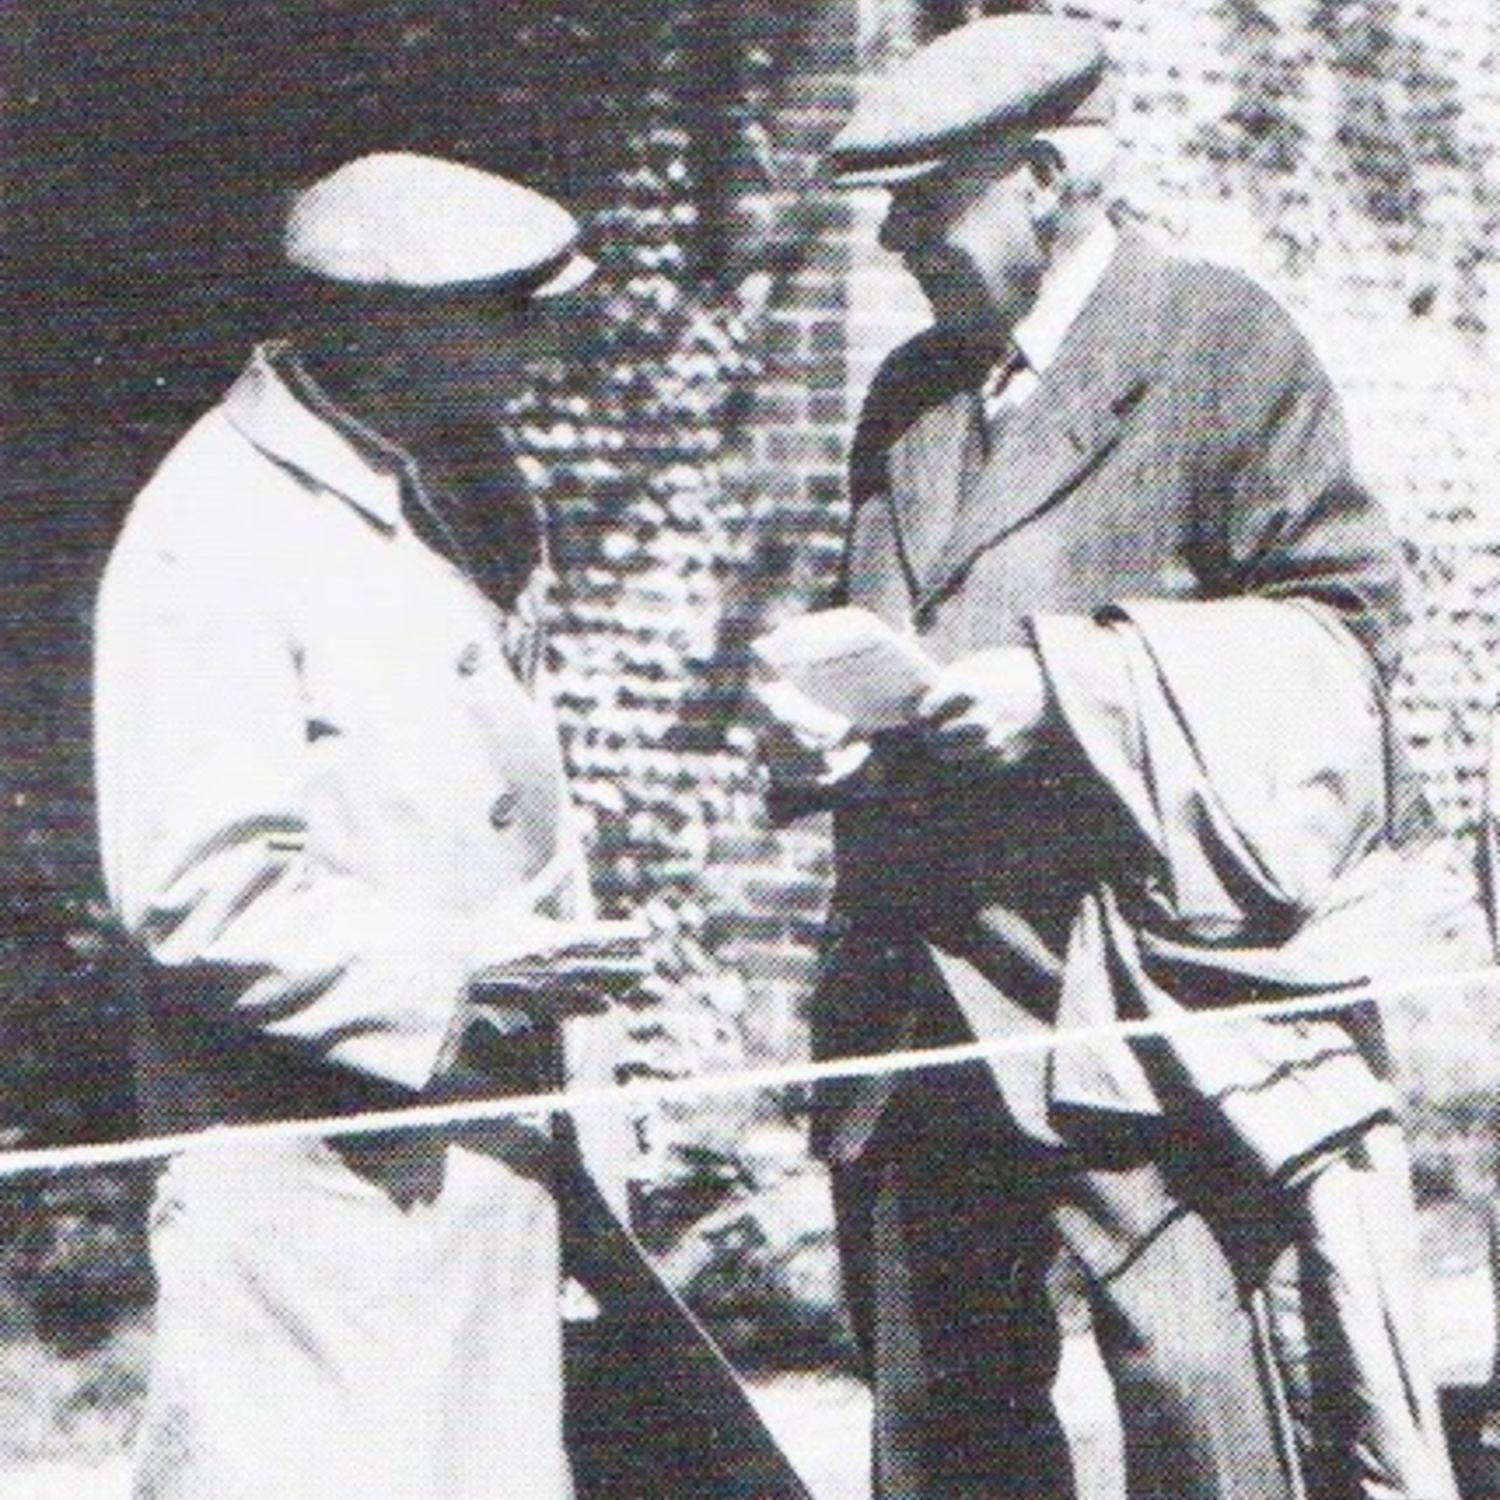 James Braid, a five times past Open Champion, was invited to attend the first Spalding Tournament